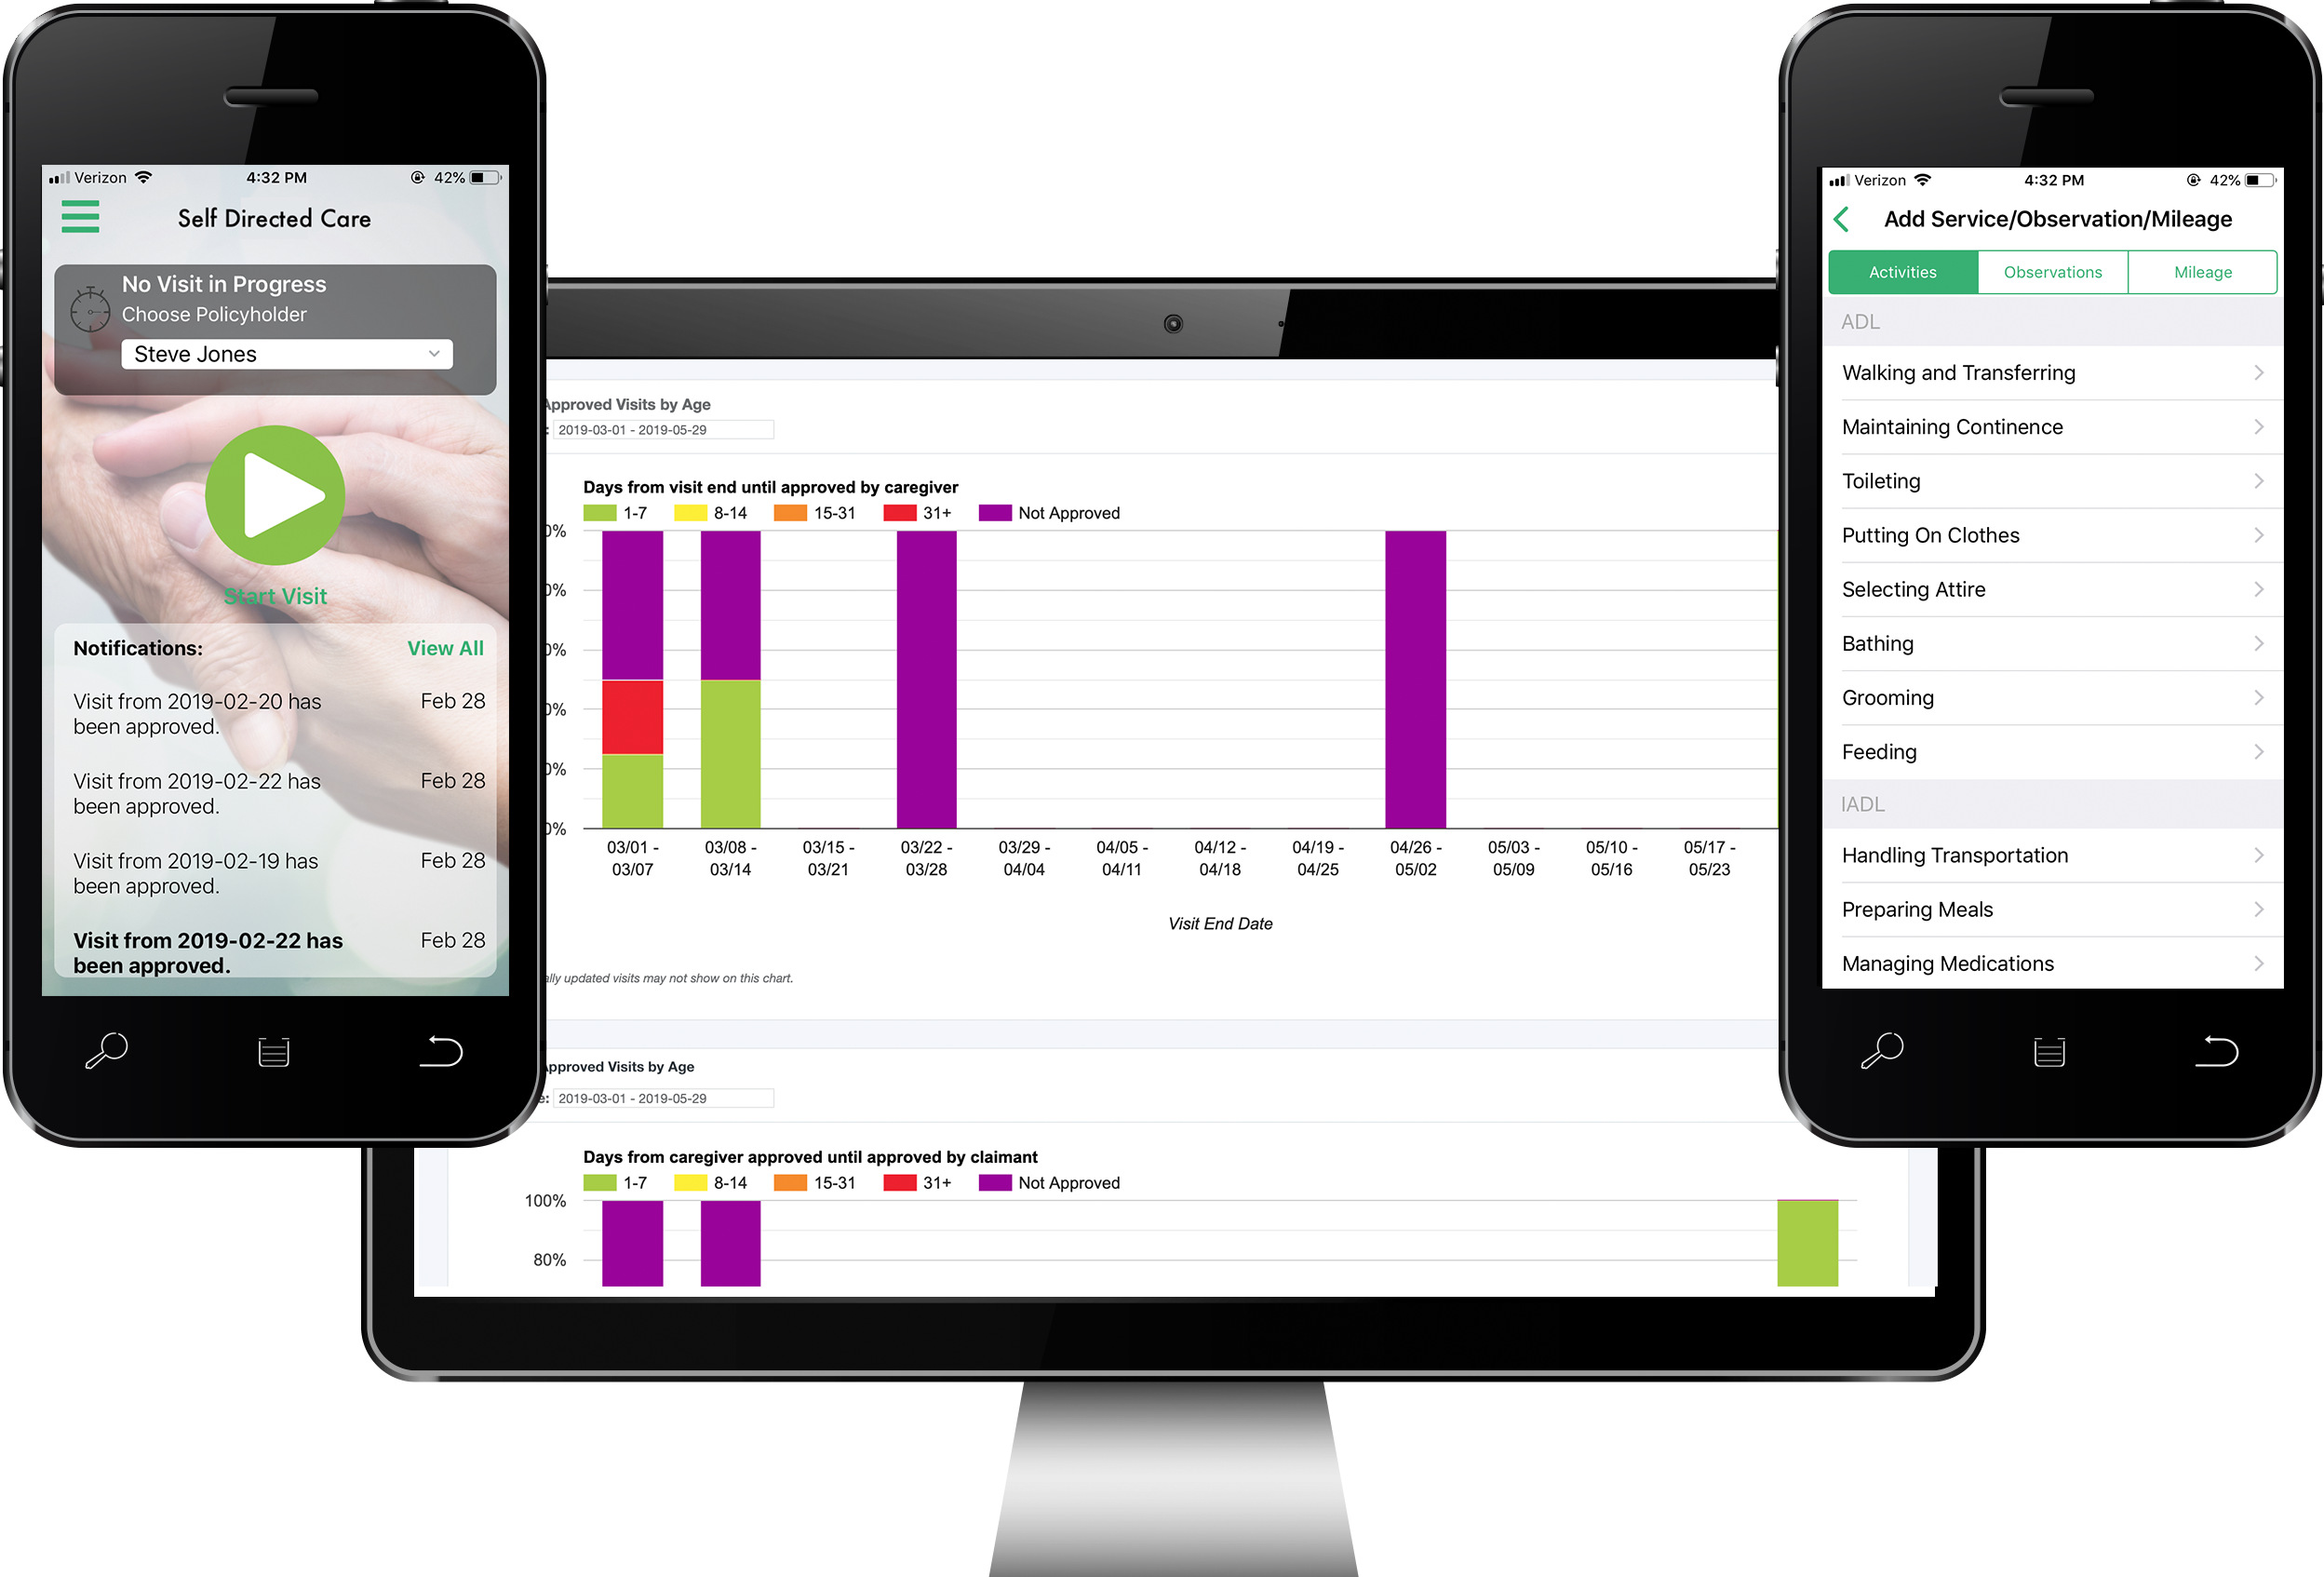 Track Usage - Easy to use mobile experience records self directed care visit activity.